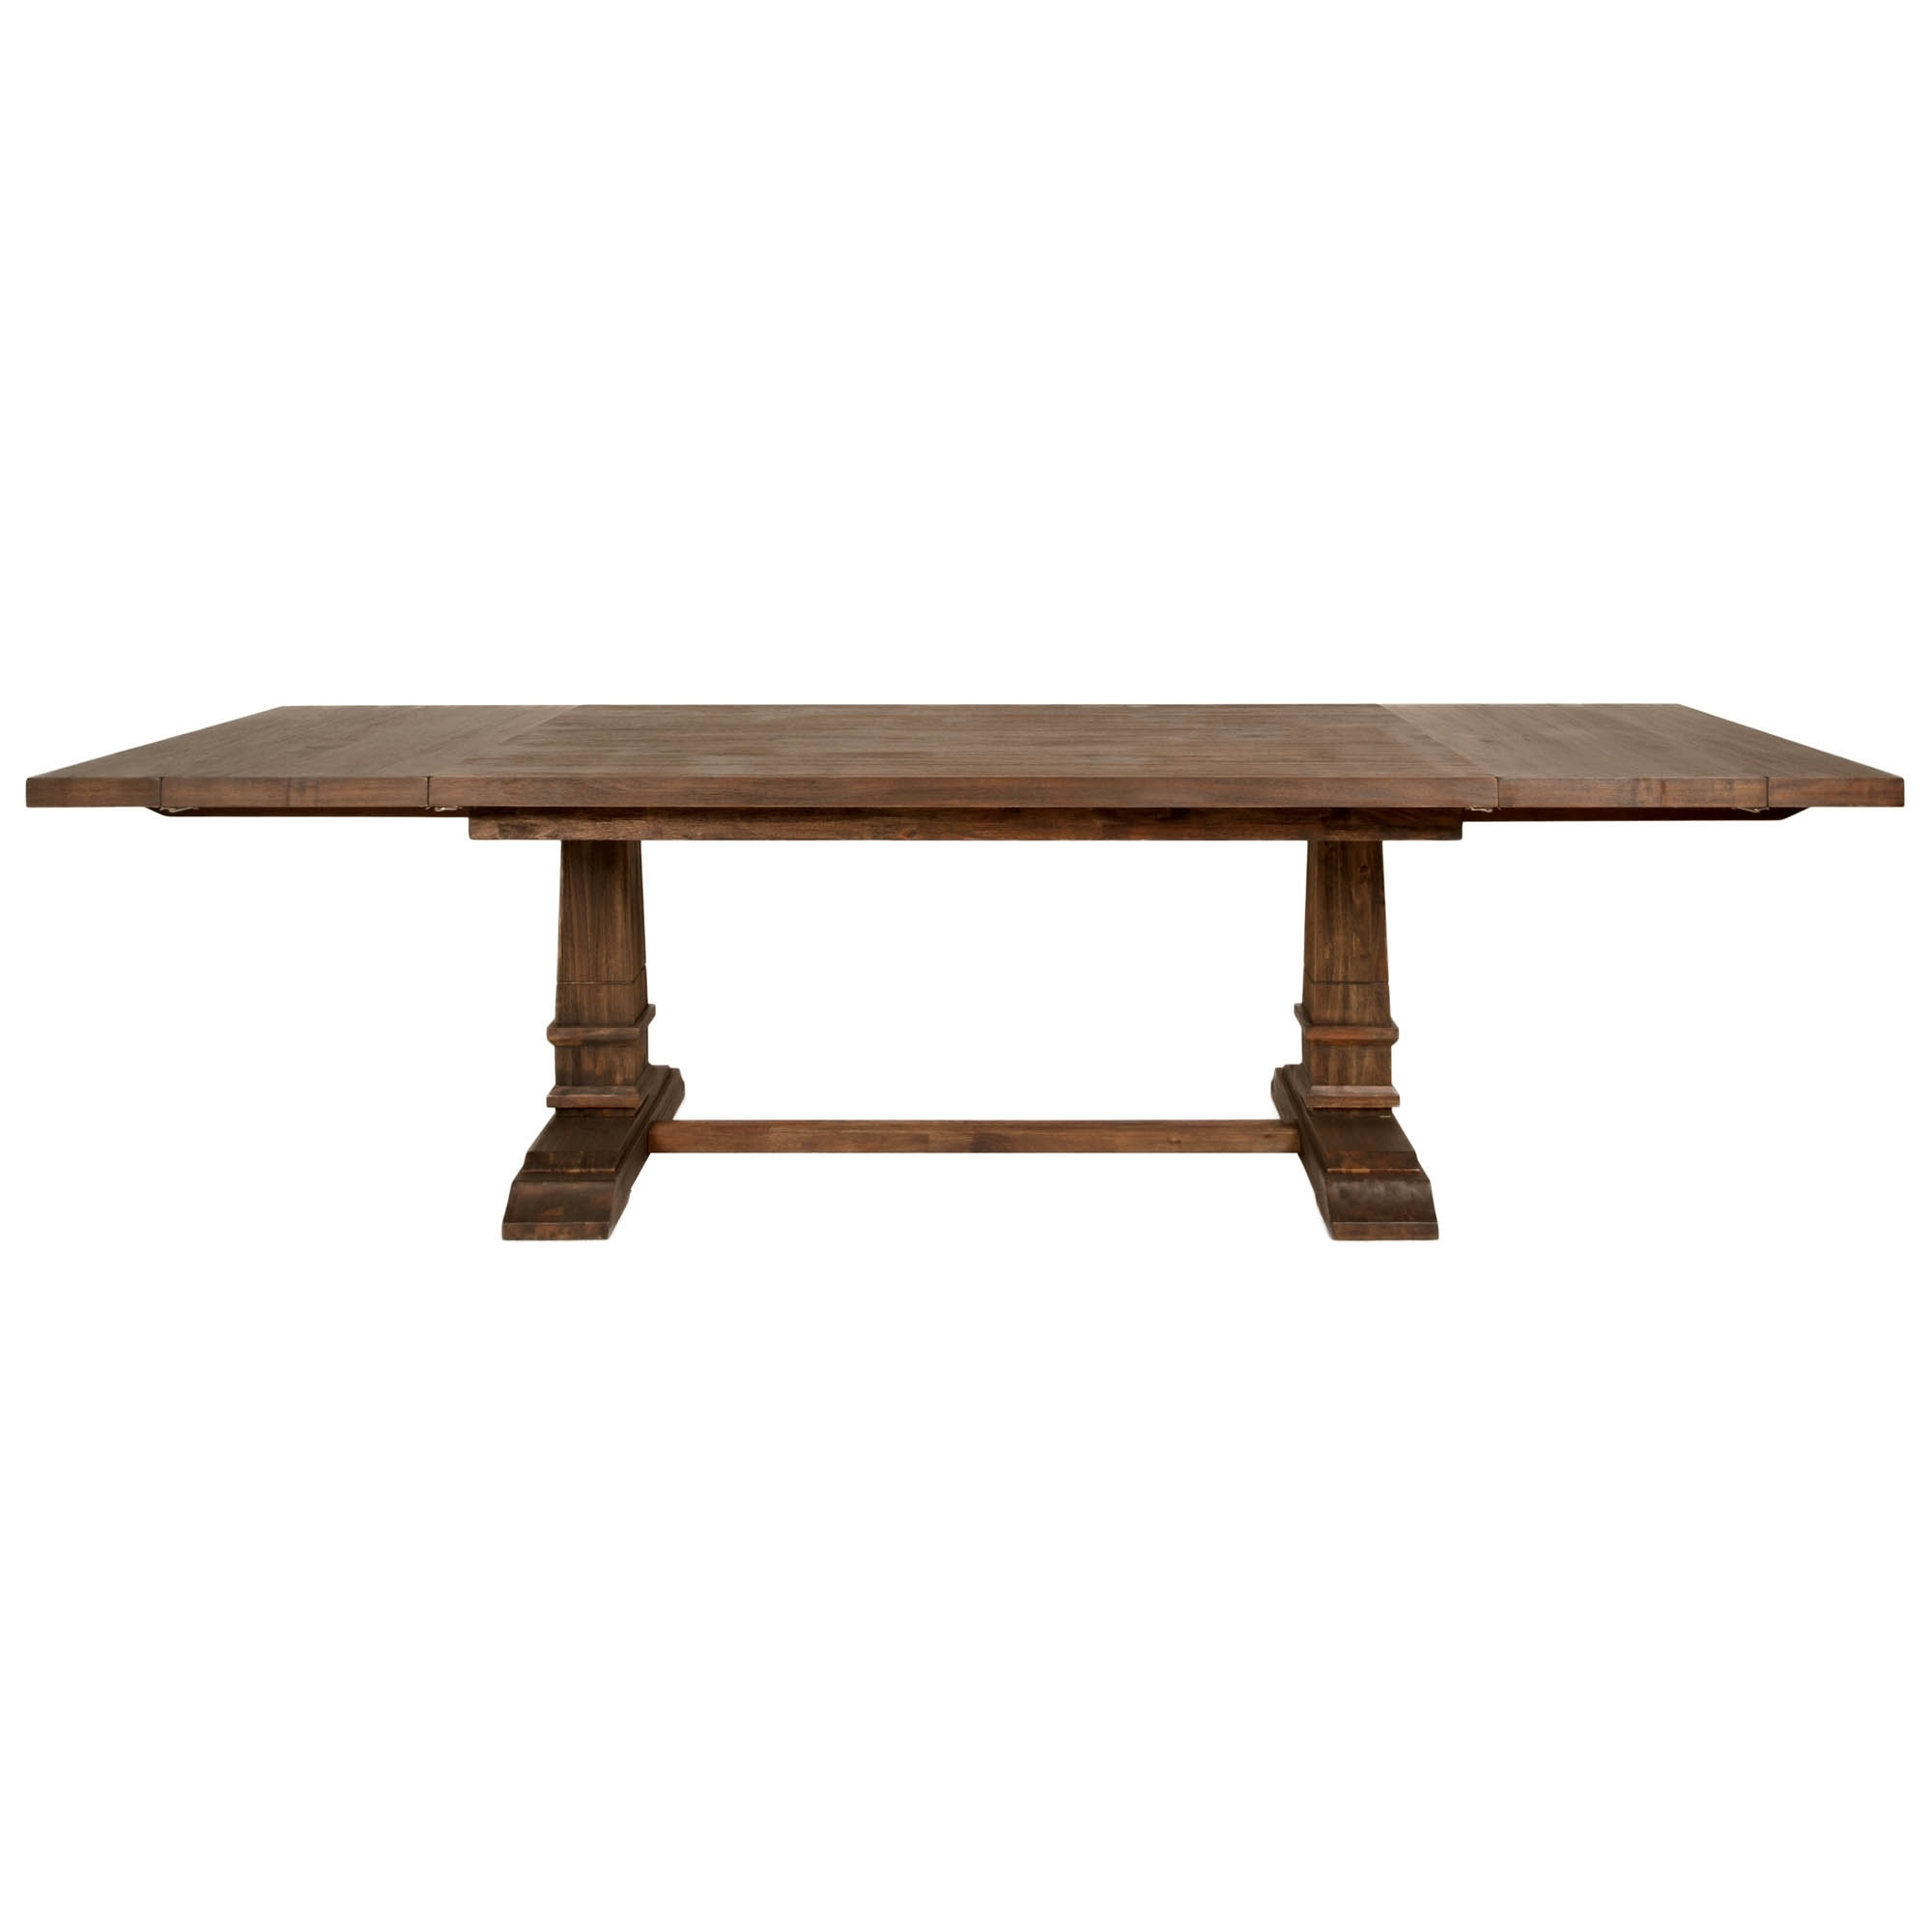 Hudson Rectangle Extension Dining Table in Widely used Next Hudson Dining Tables